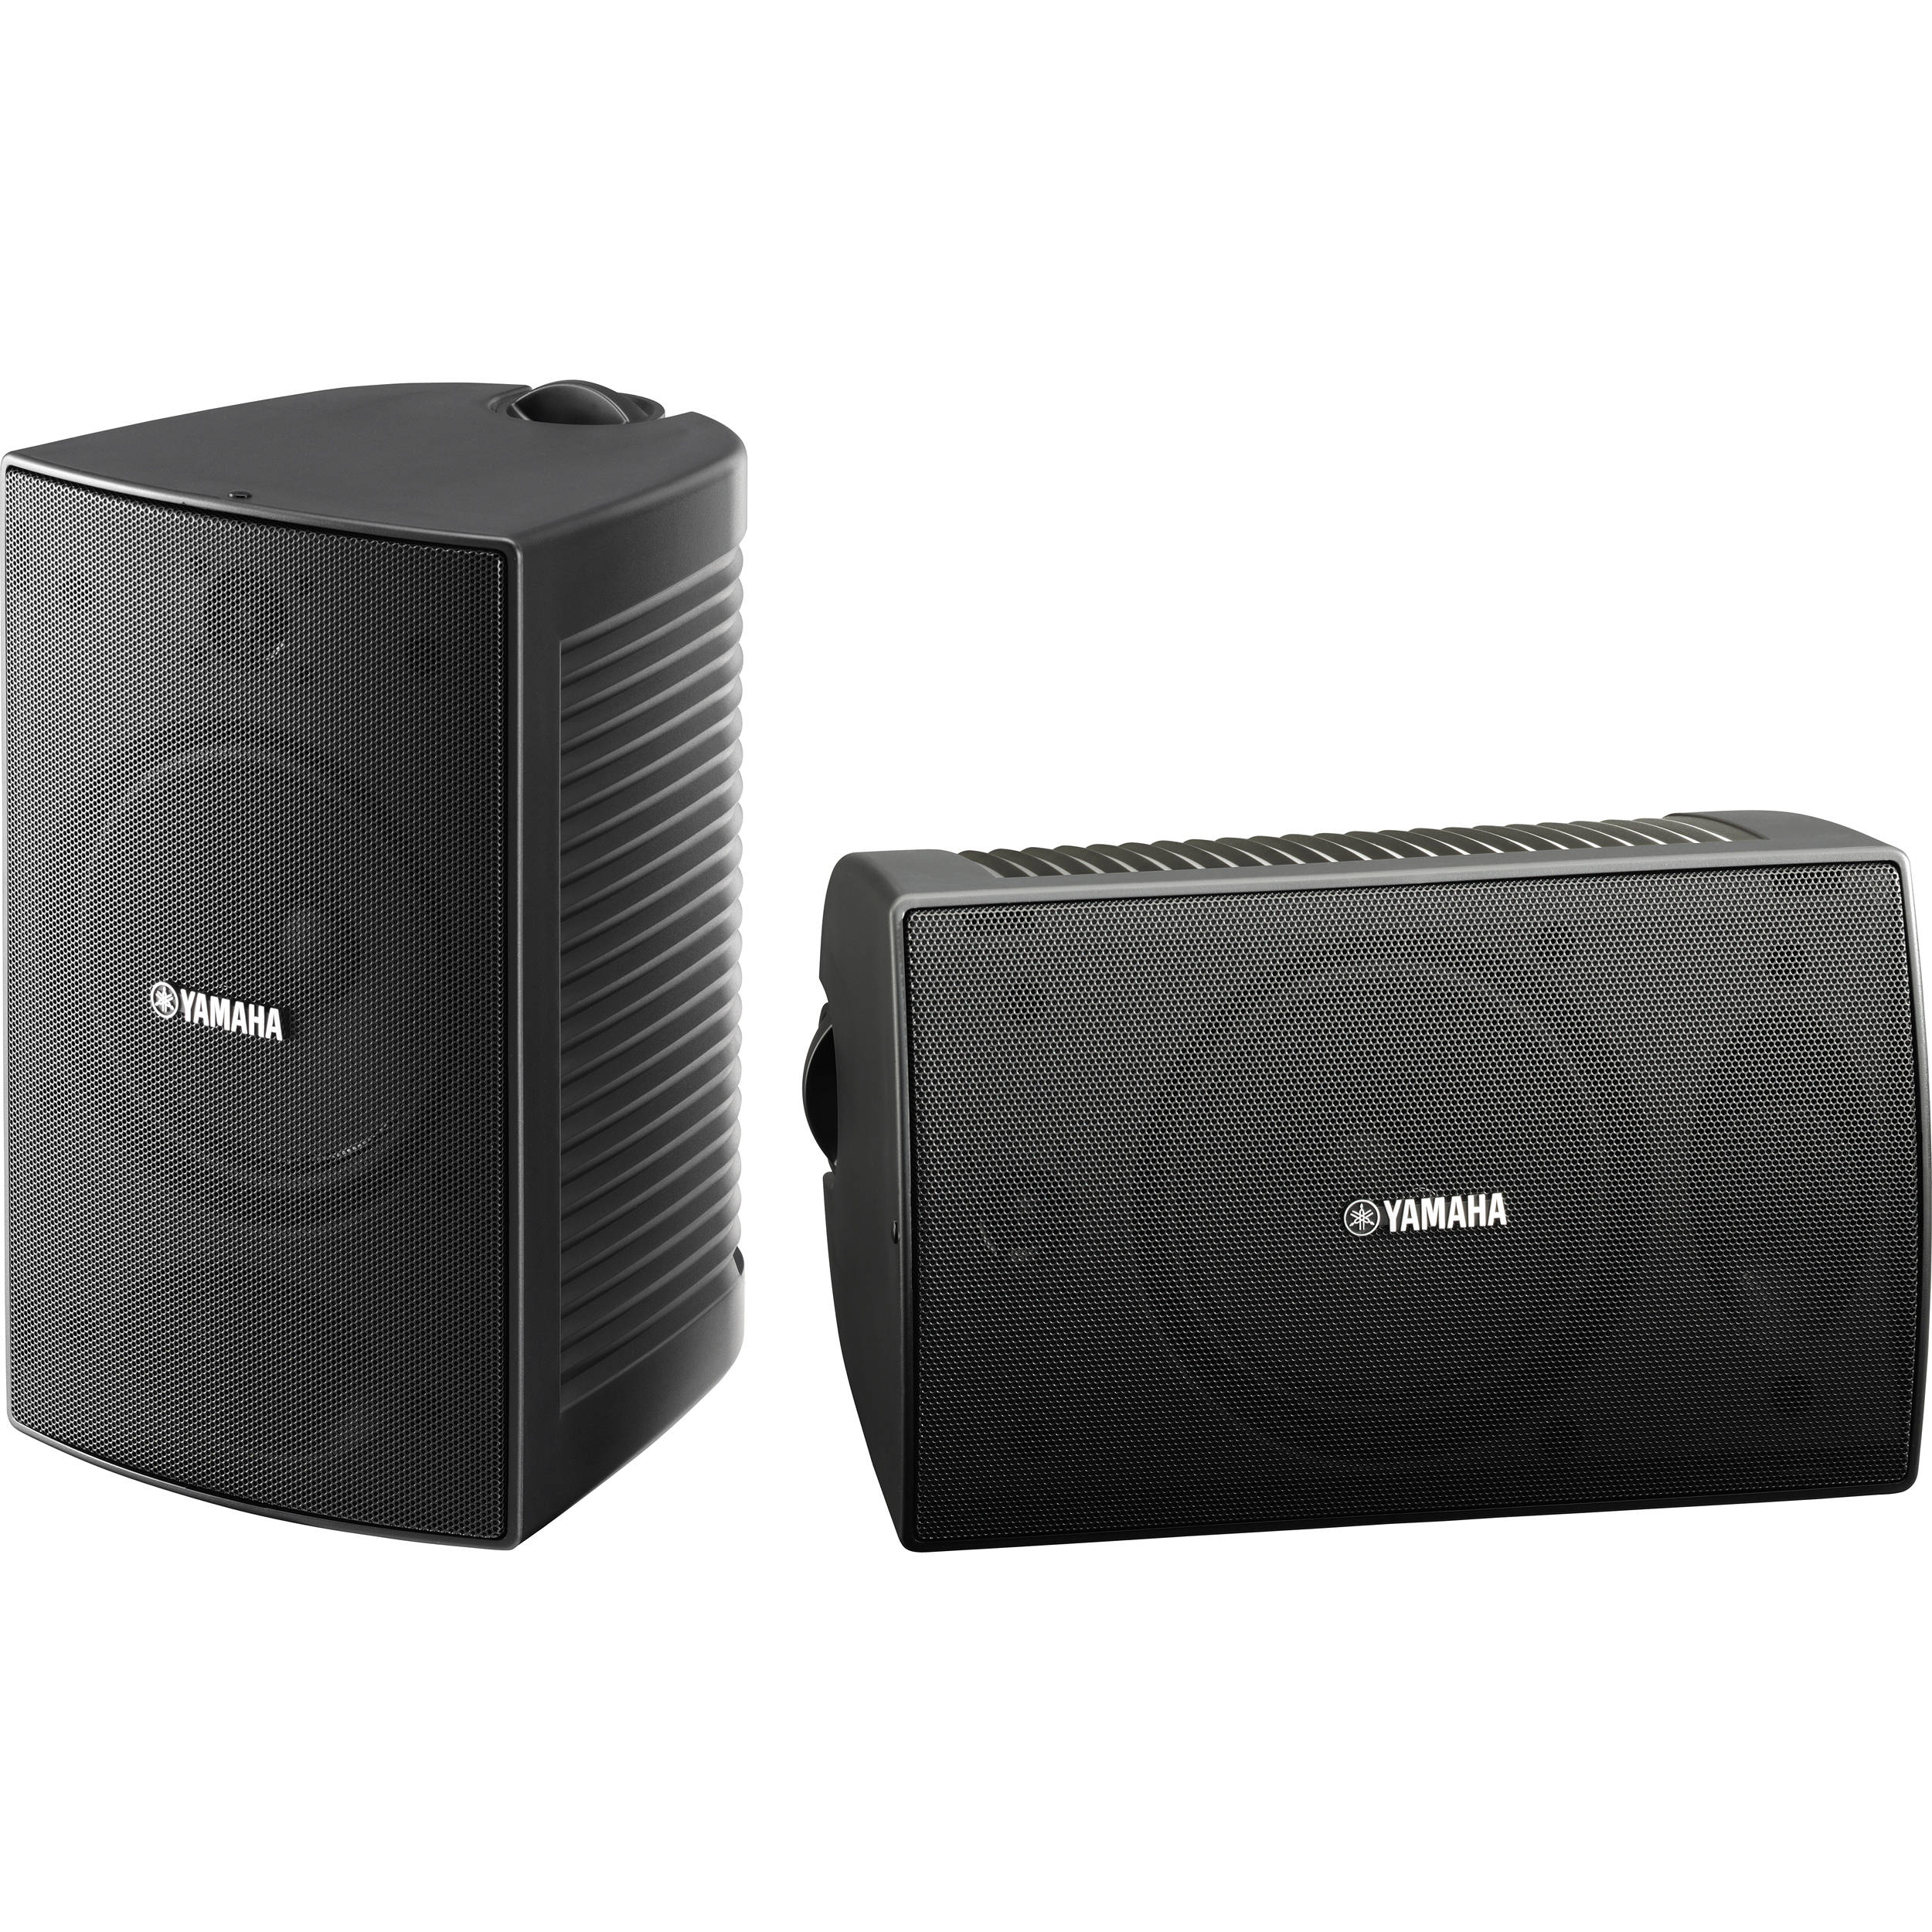 yamaha nsaw294 outdoor speakers (pair, black) nsaw294bl b&h ~ Spülbecken Outdoor